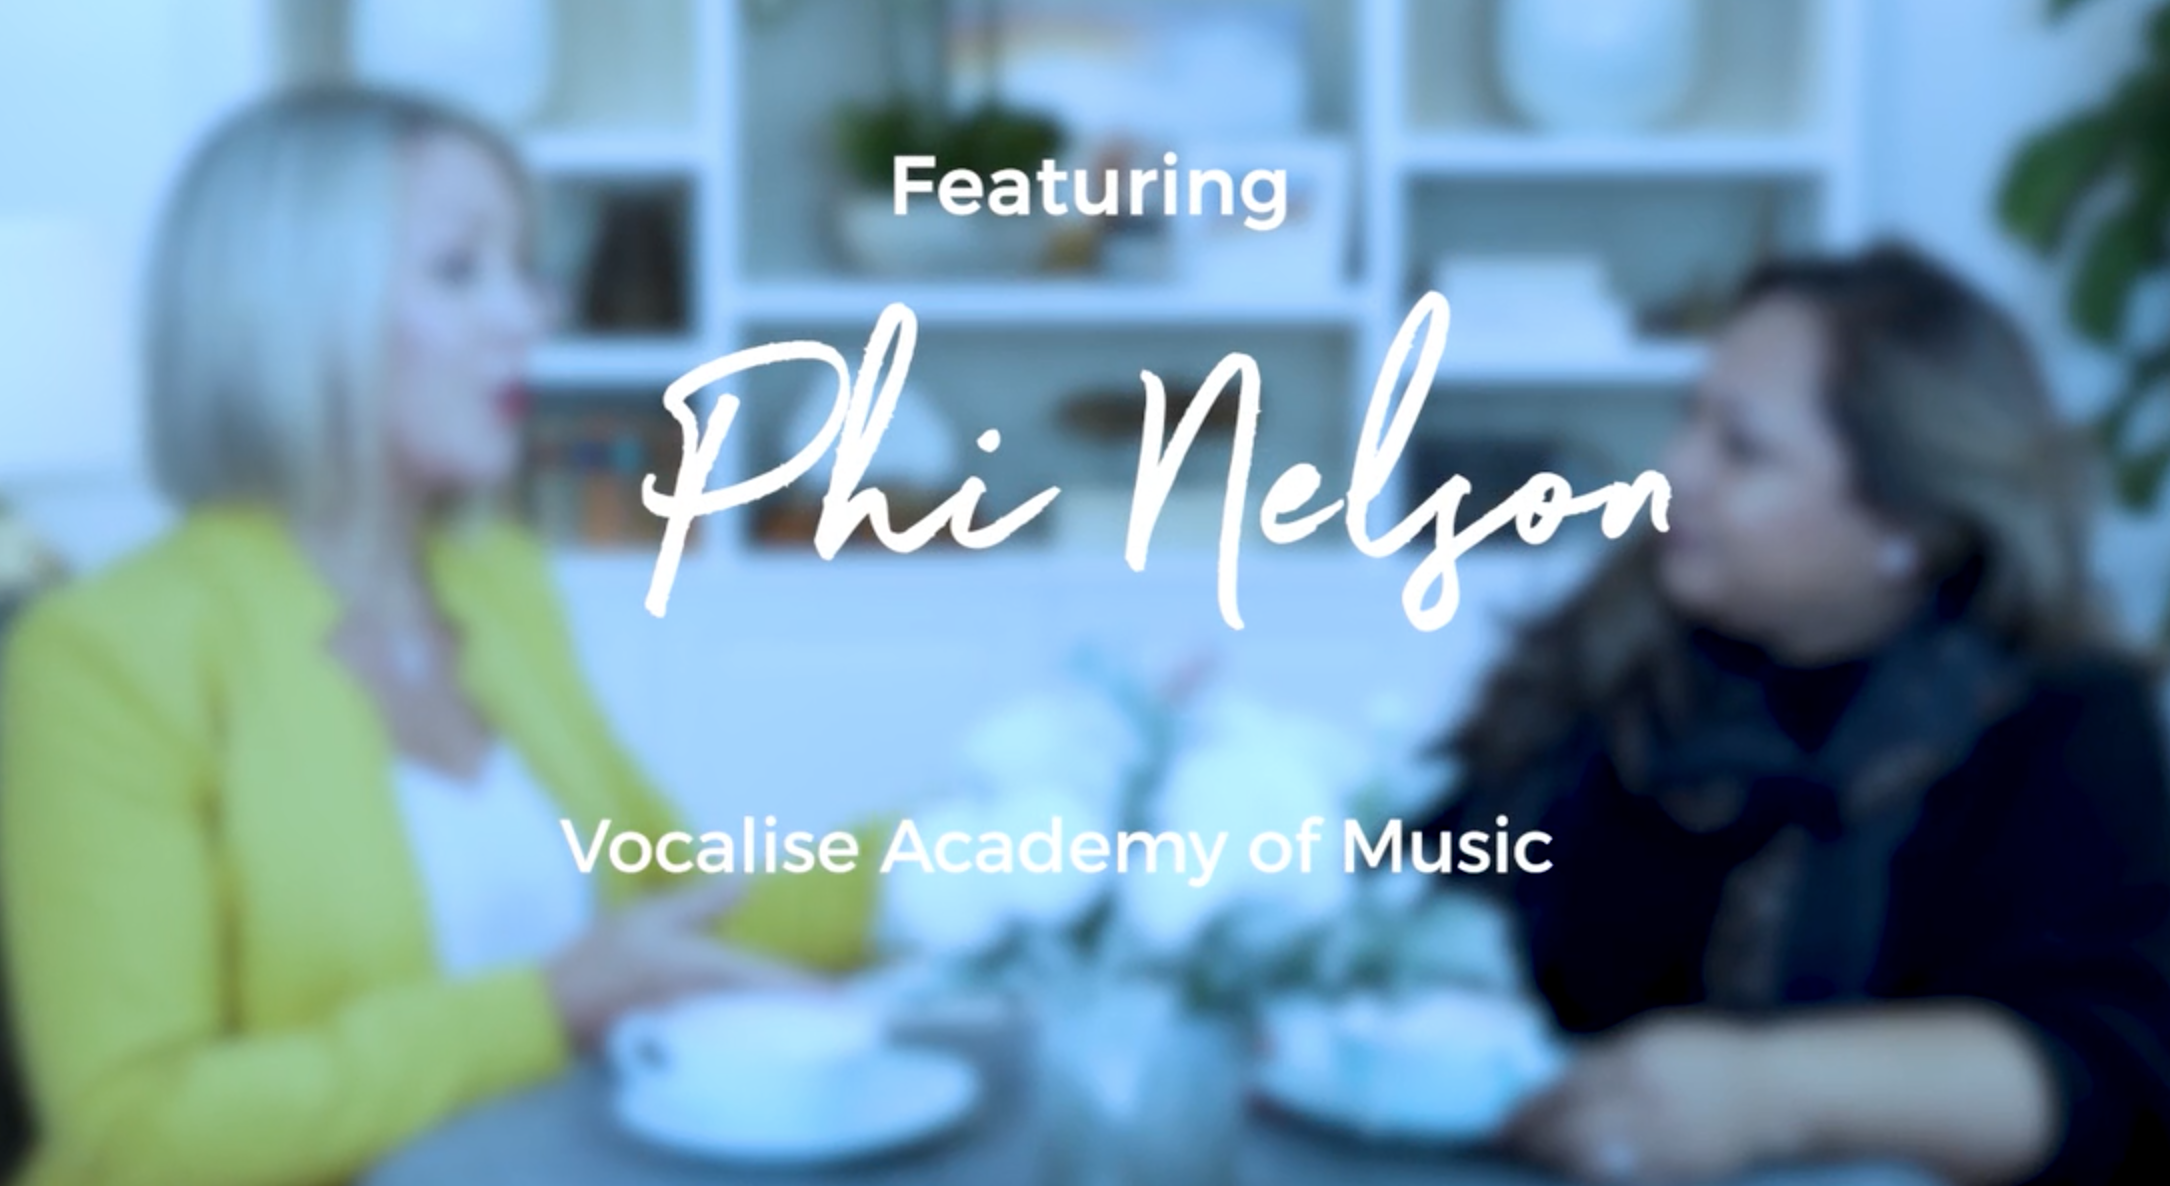 High Tea with Chantelle – Featuring Phi Nelson